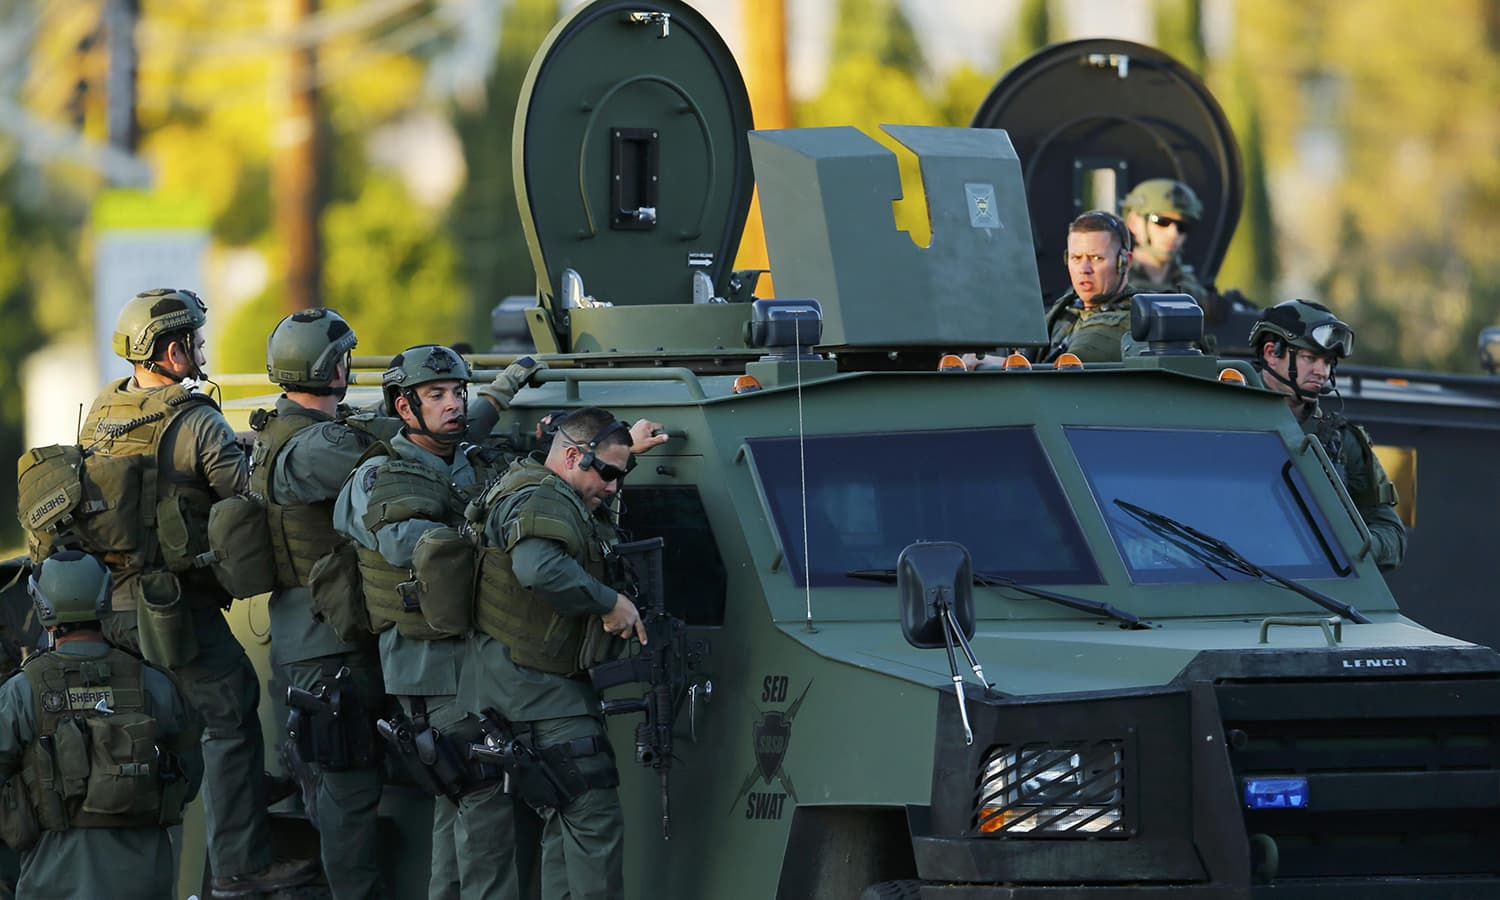 Police officers conduct a manhunt after the mass shooting in San Bernardino. ─ Reuters